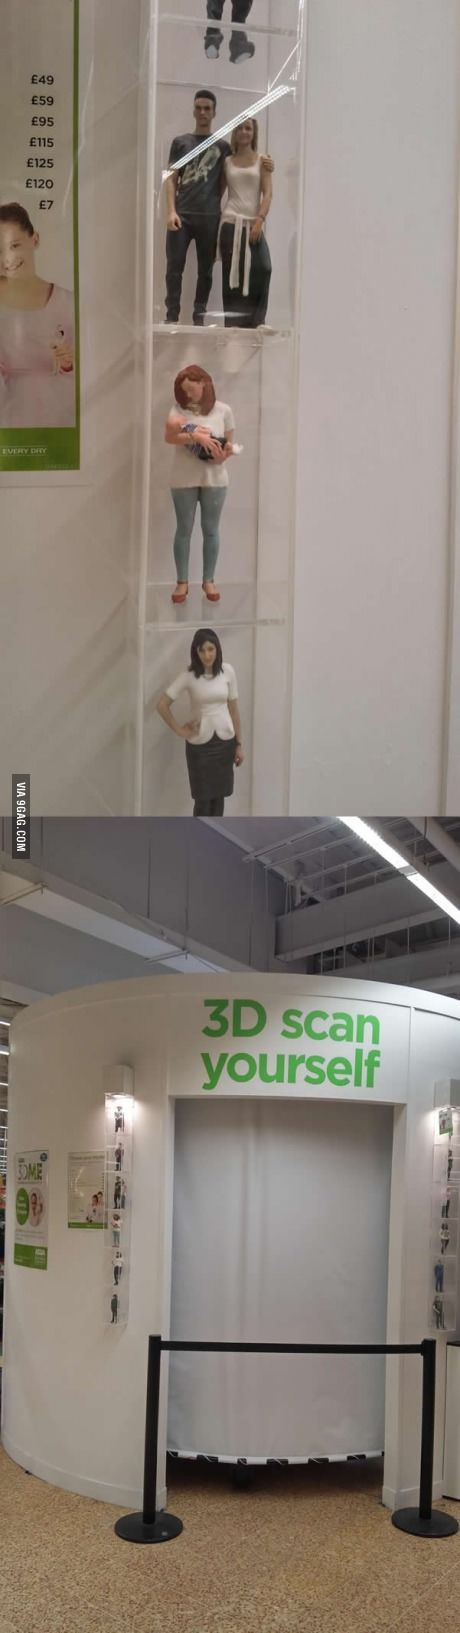 The supermarket near me has machines where you can make a 3d printed model of yourself